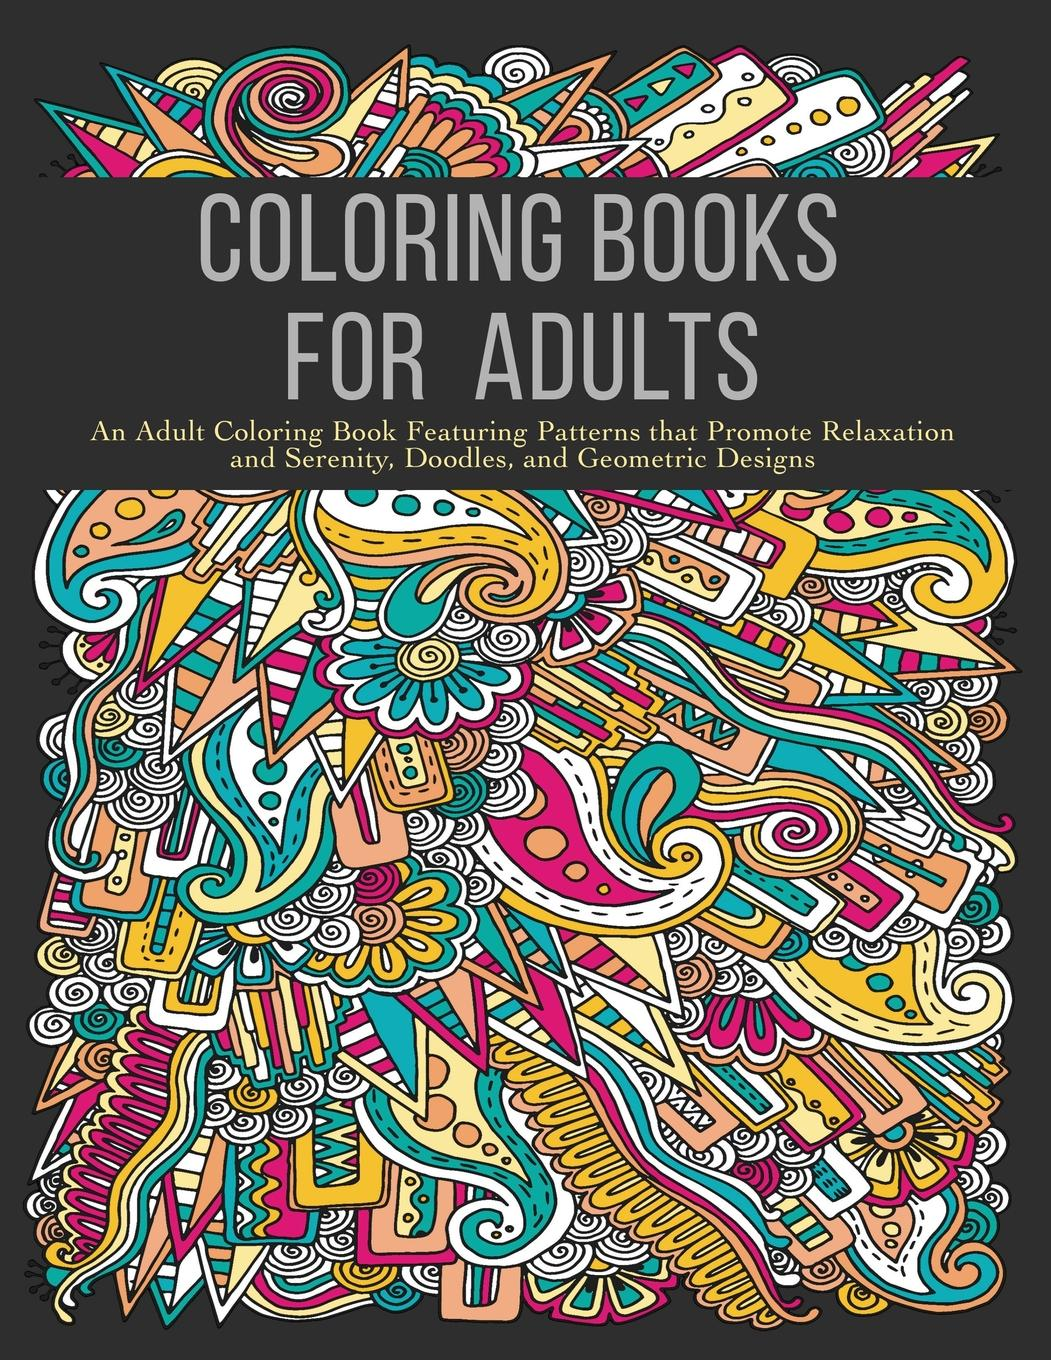 Coloring Books For Adults: An Adult Coloring Book Featuring Patterns That  Promote Relaxation And Serenity, Doodles, And Geometric Designs (Paperback)  - Walmart.com - Walmart.com